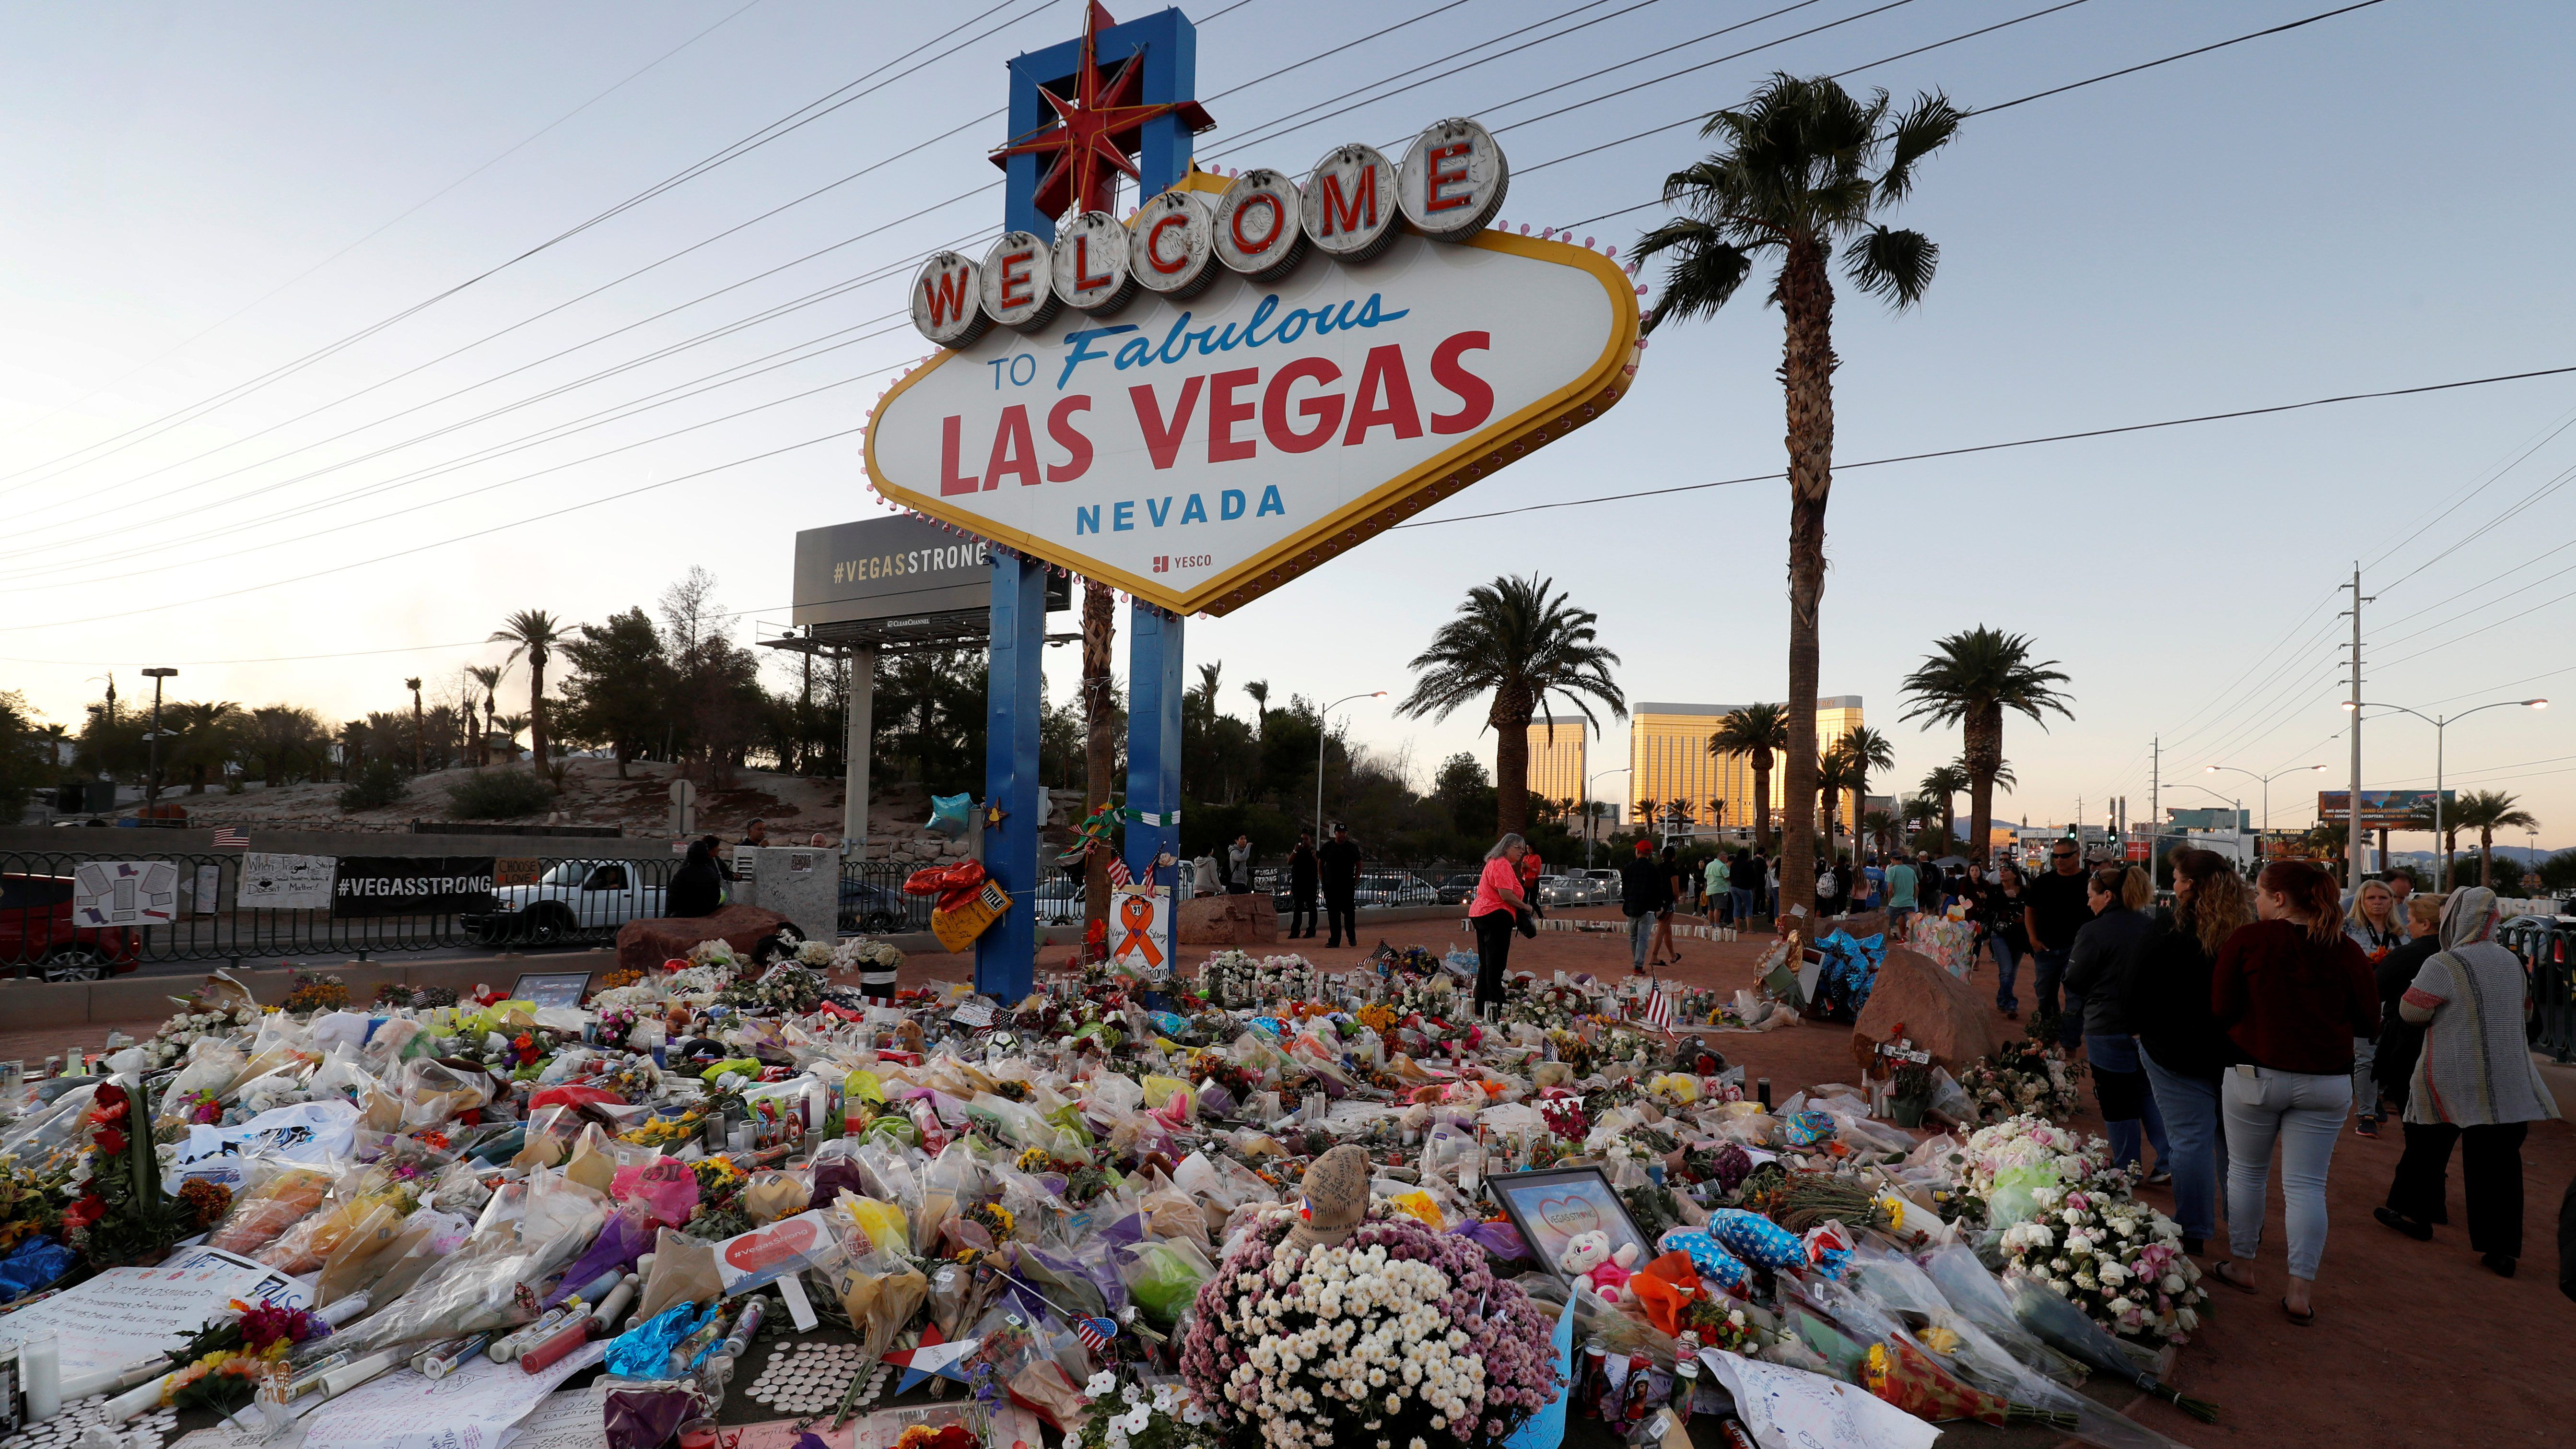 The Las Vegas attack: terrorism or not? Analyzing the debate surrounding the definition of terrorists and terrorist attacks